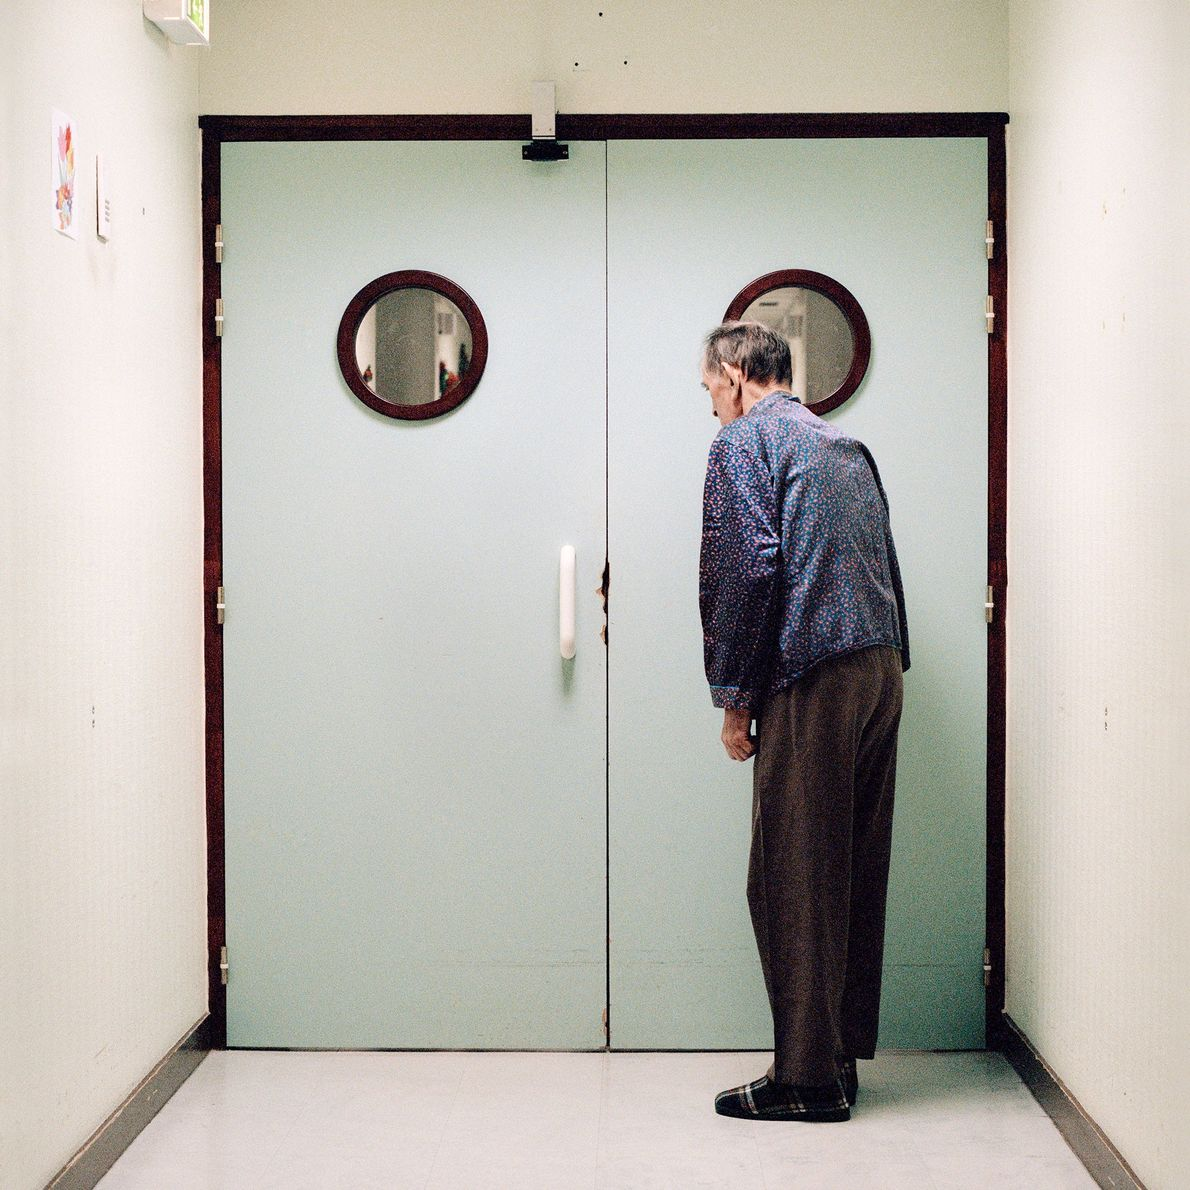 A resident stands in front of the ward's locked exit.